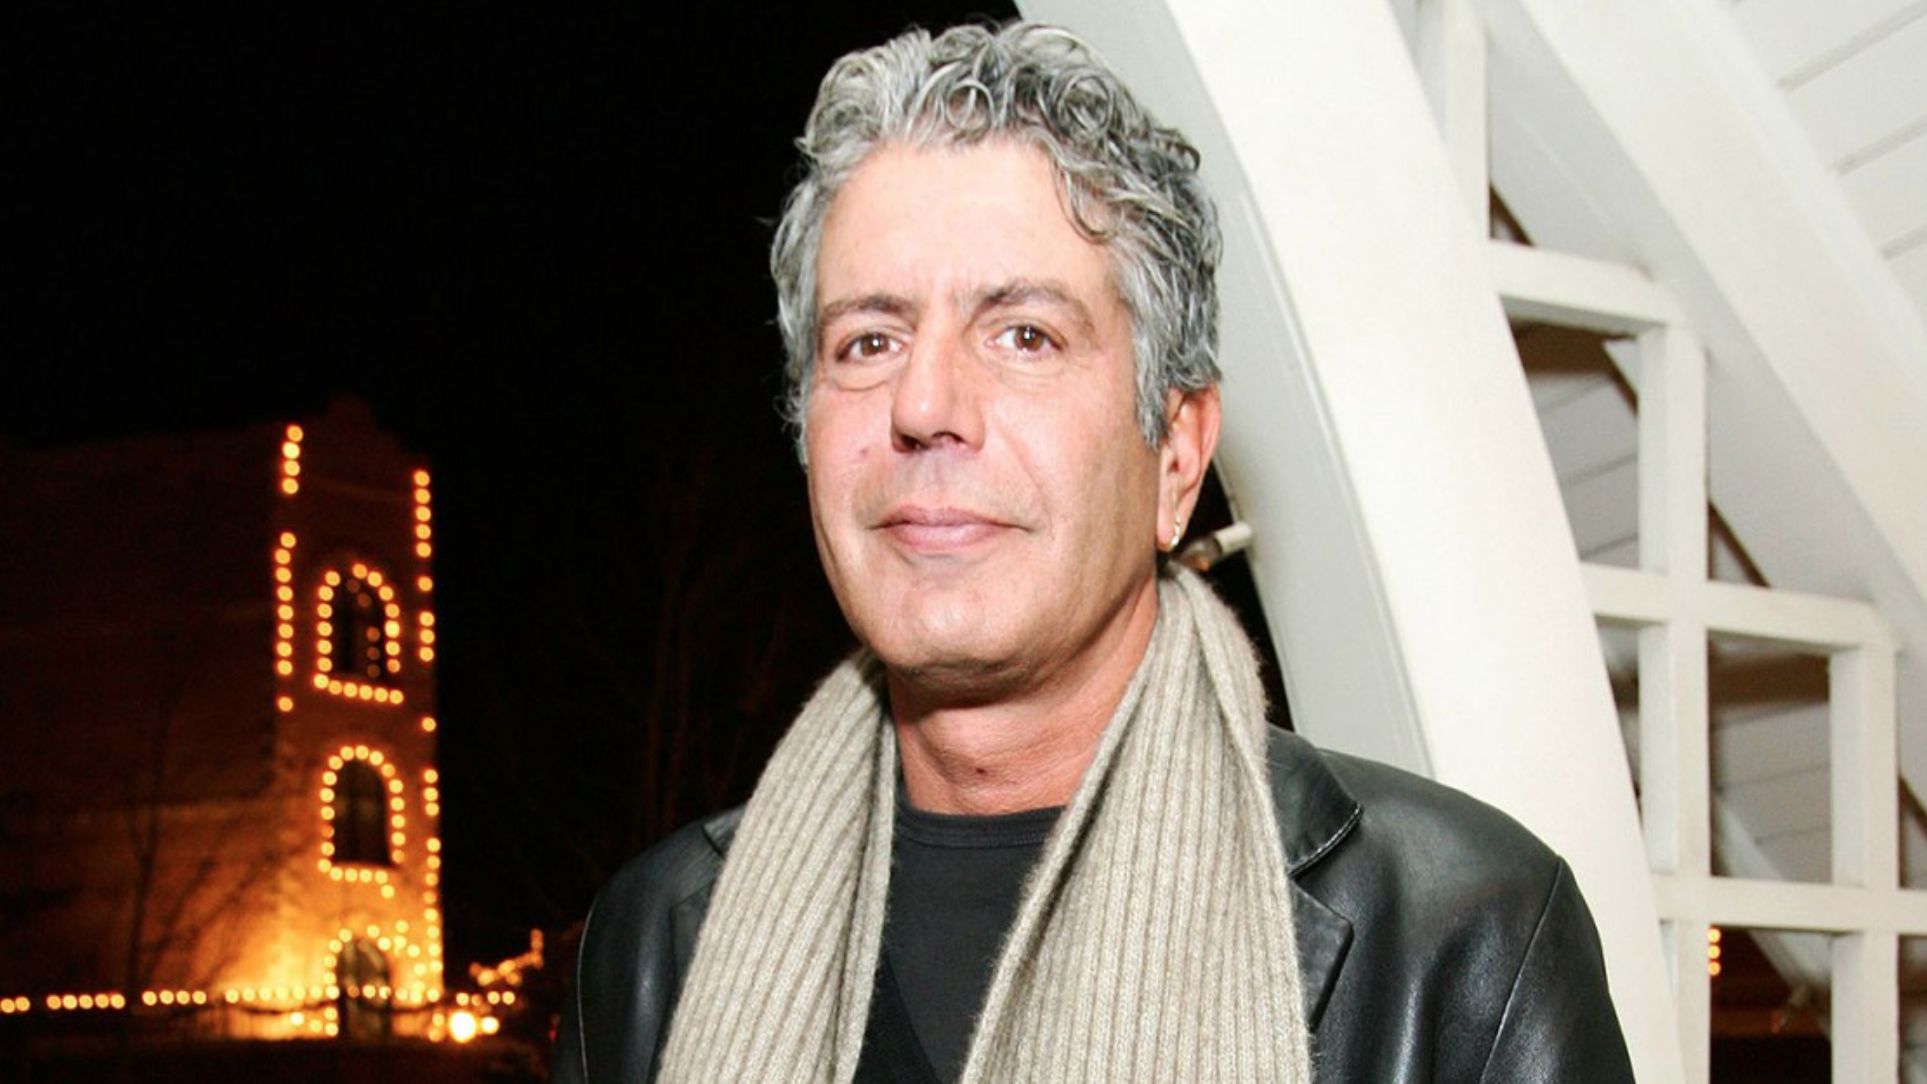 Anthony Bourdain's Death Brings Attention to the Soaring Rates of Suicide in the U.S.